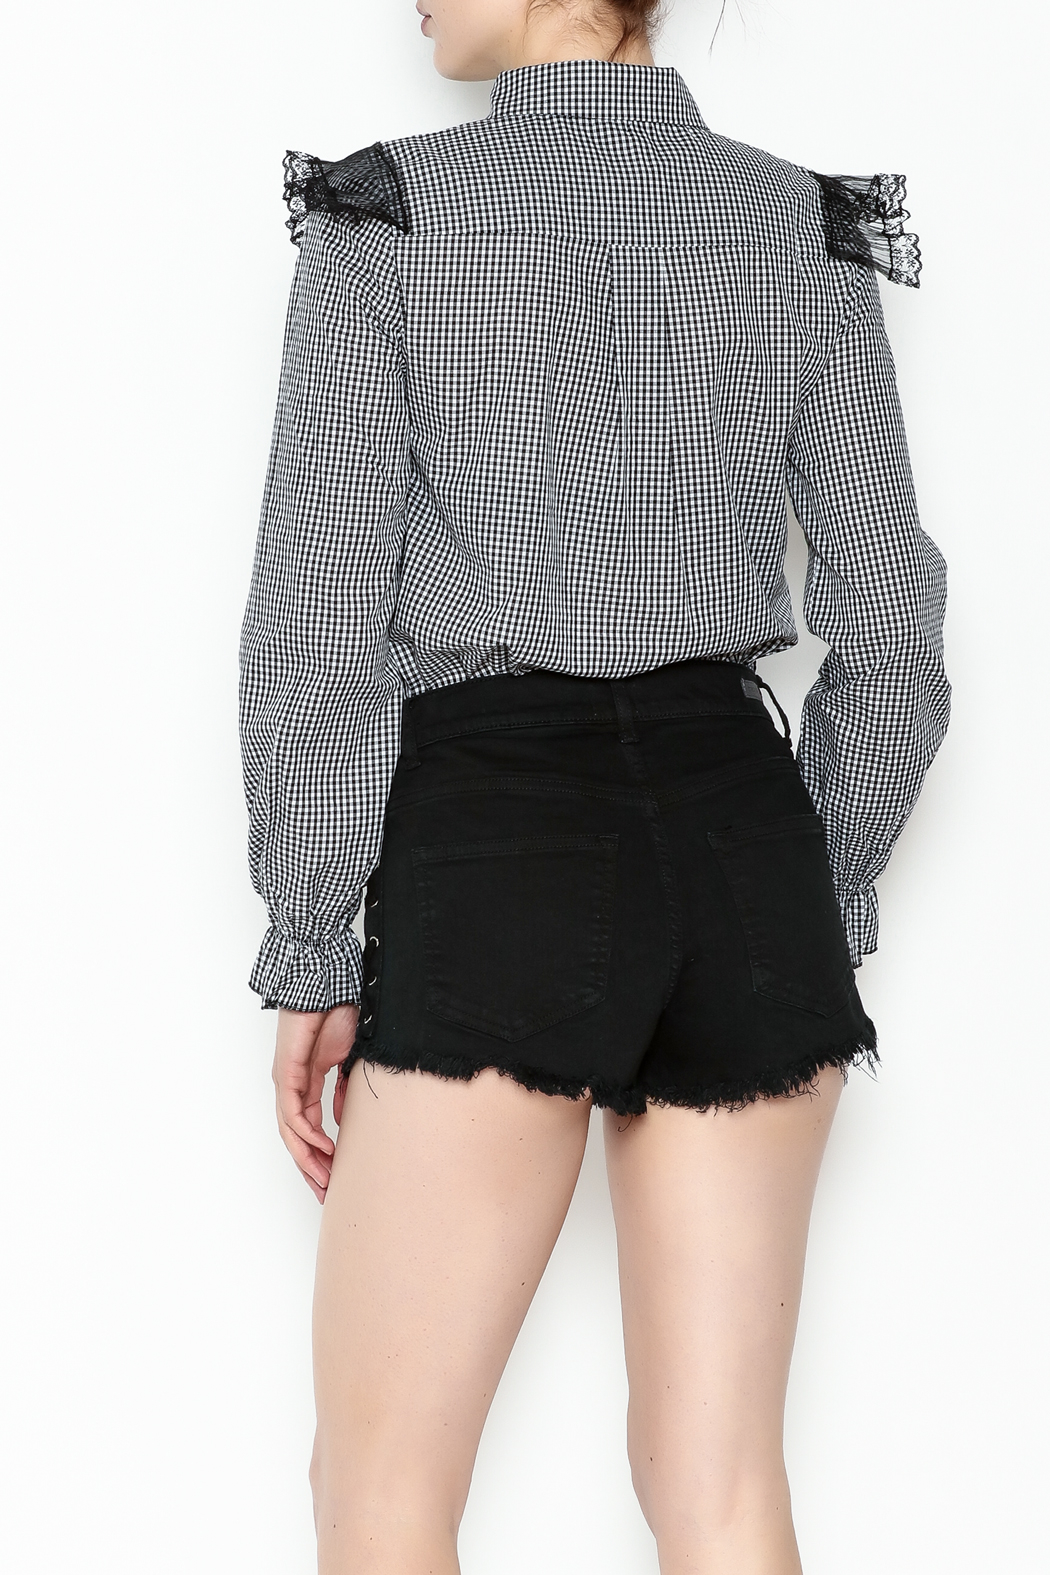 After Market Checkered Lace Top - Back Cropped Image